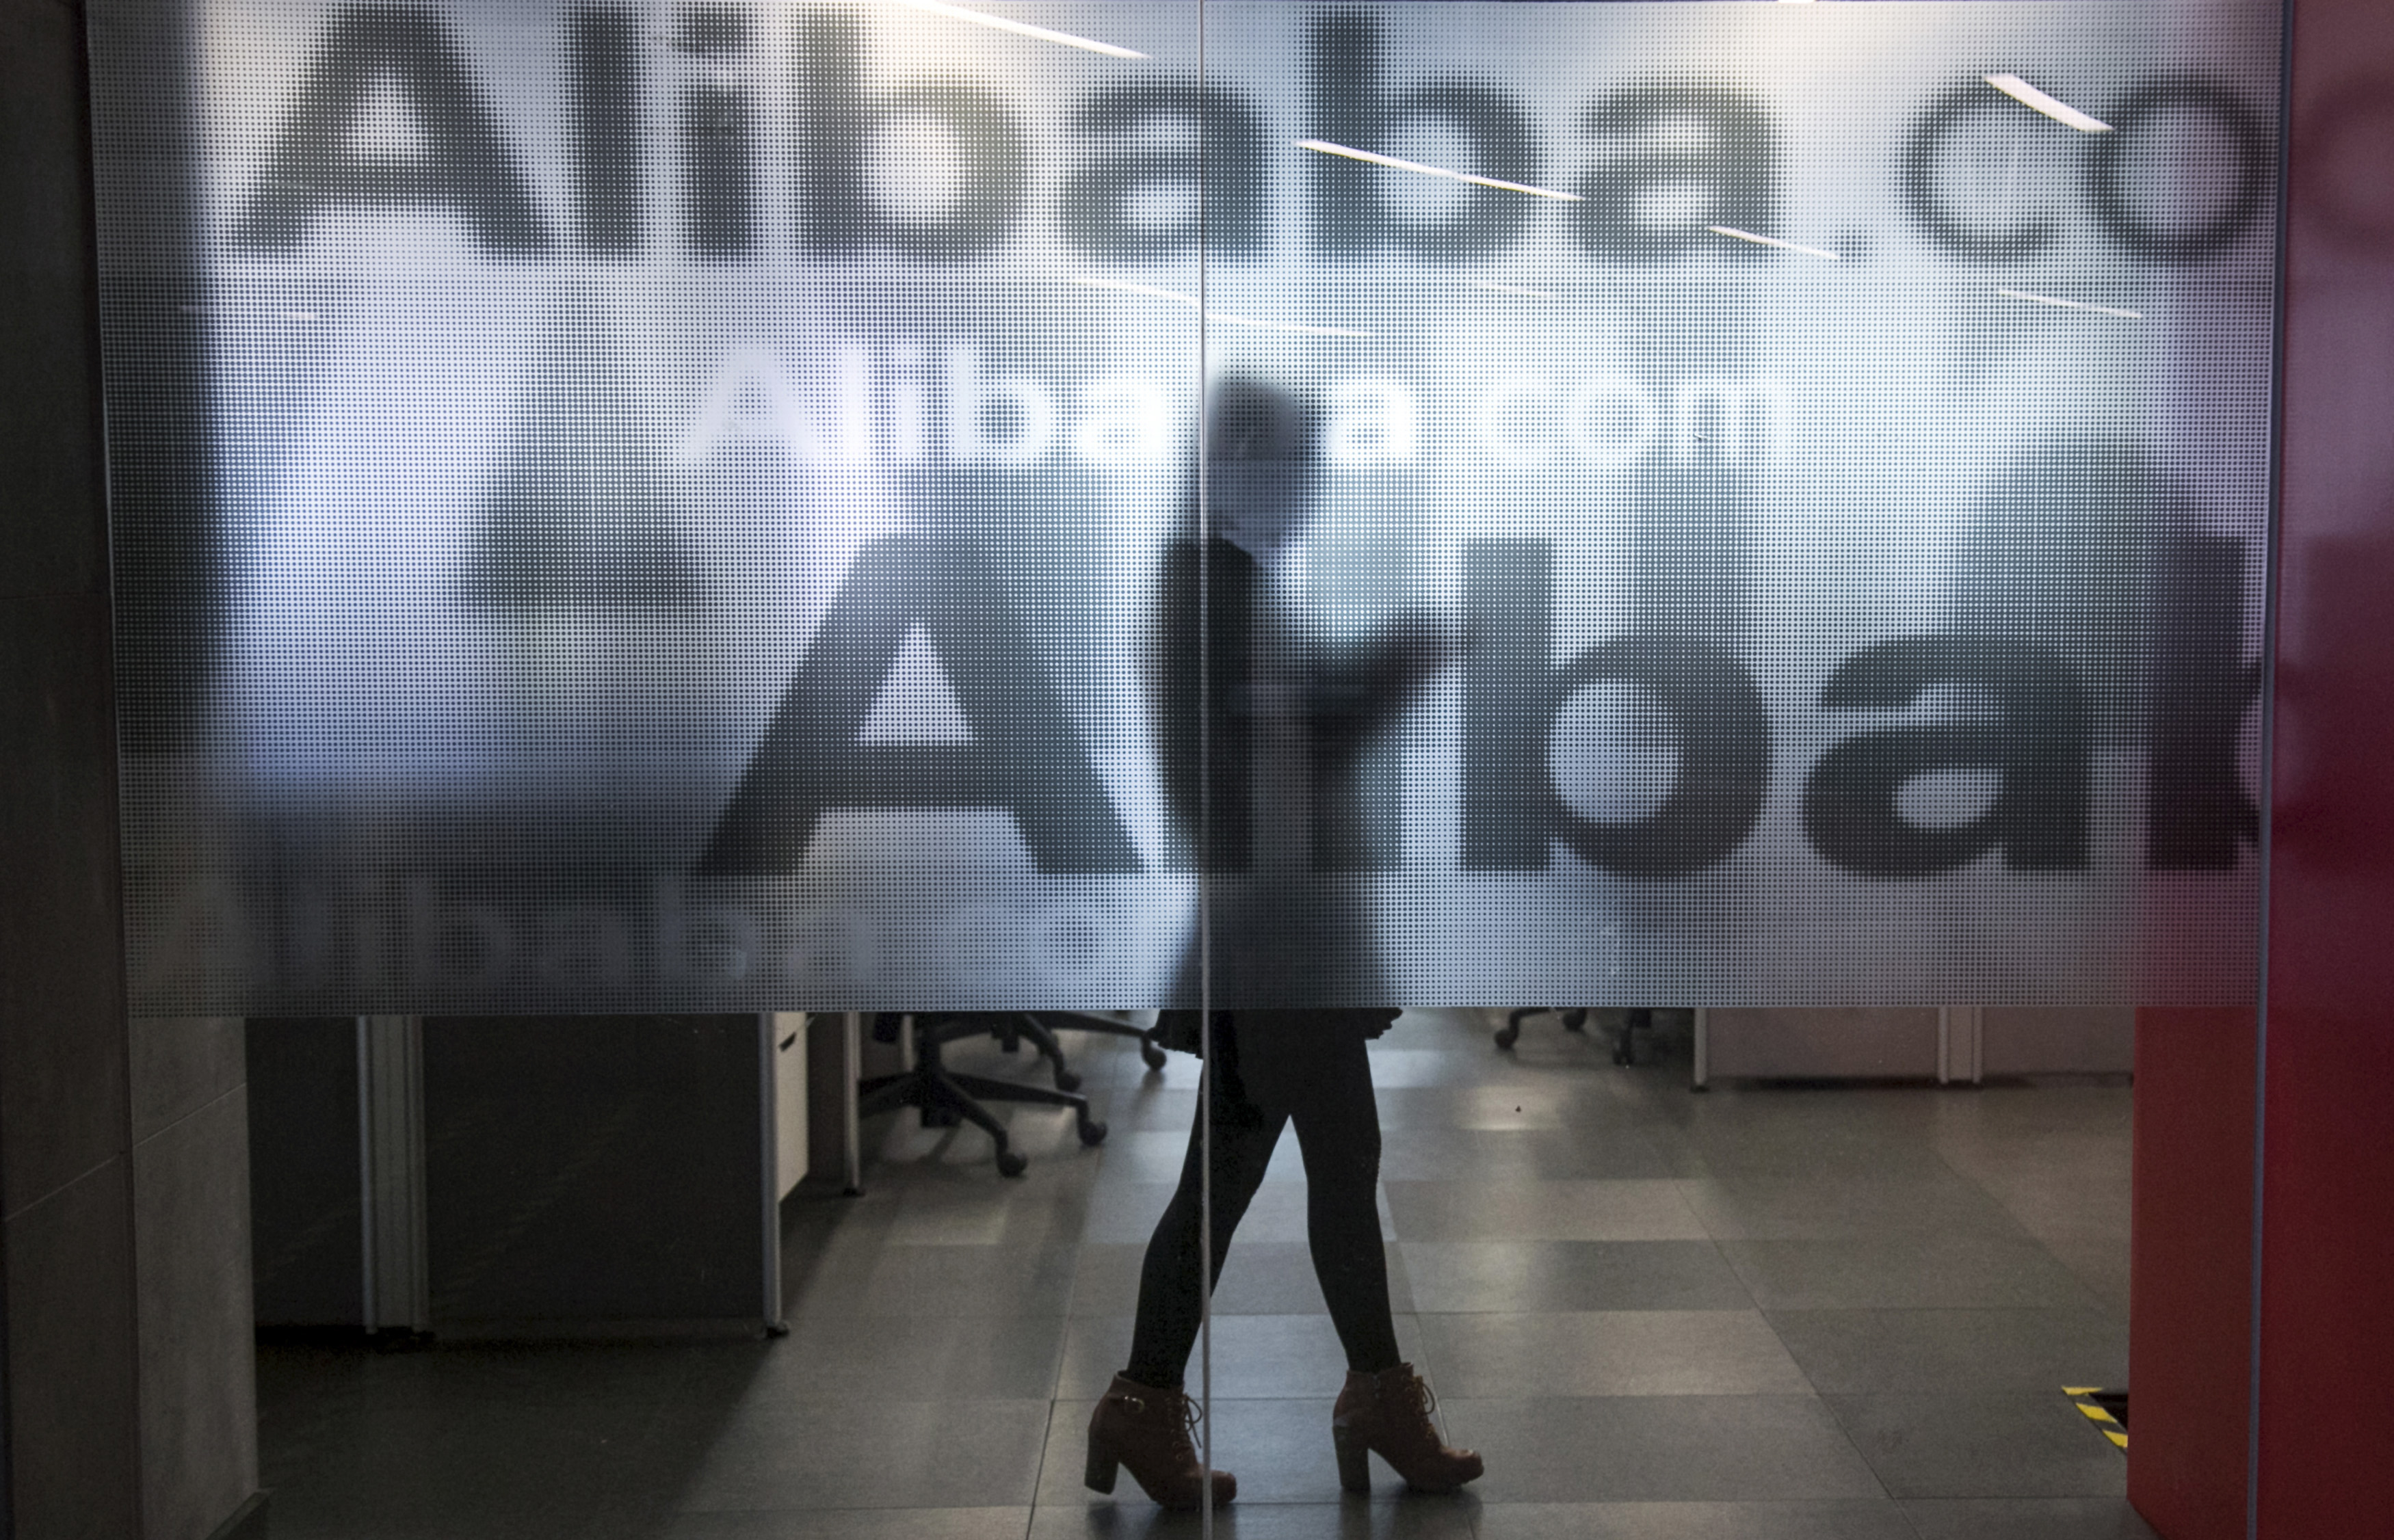 An employee is seen behind a glass wall at Alibaba's headquarters on the outskirts of Hangzhou, China, on April 23, 2014